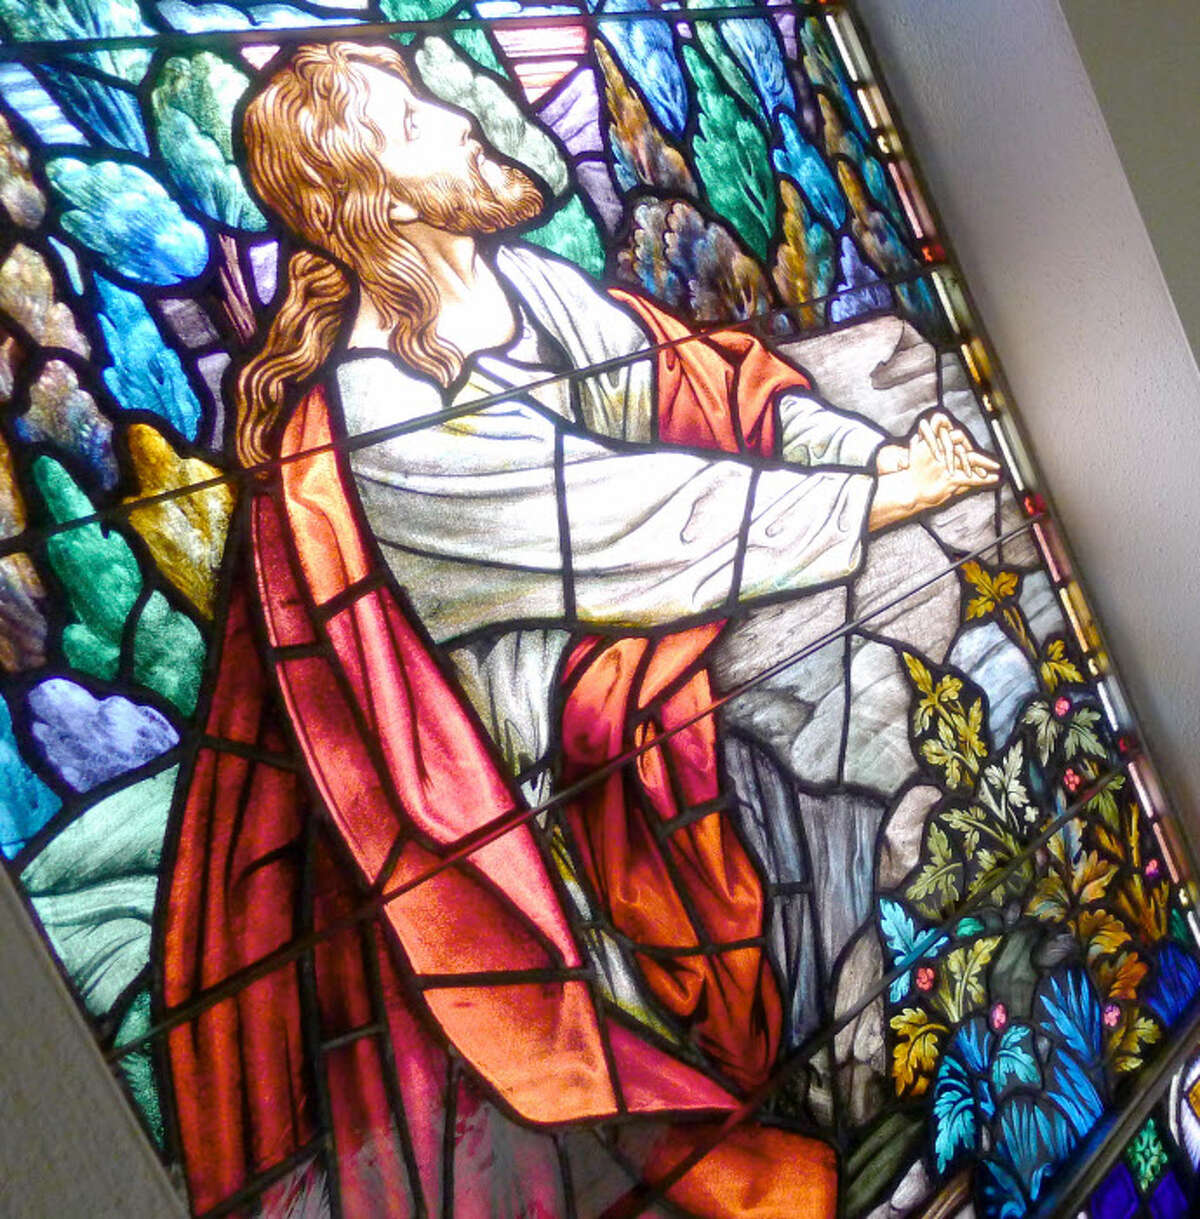 A stained-glass window at Bethany Reformed Church in Albany, N.Y. (Michael P. Farrell/Times Union) ORG XMIT: MER2016021716431932